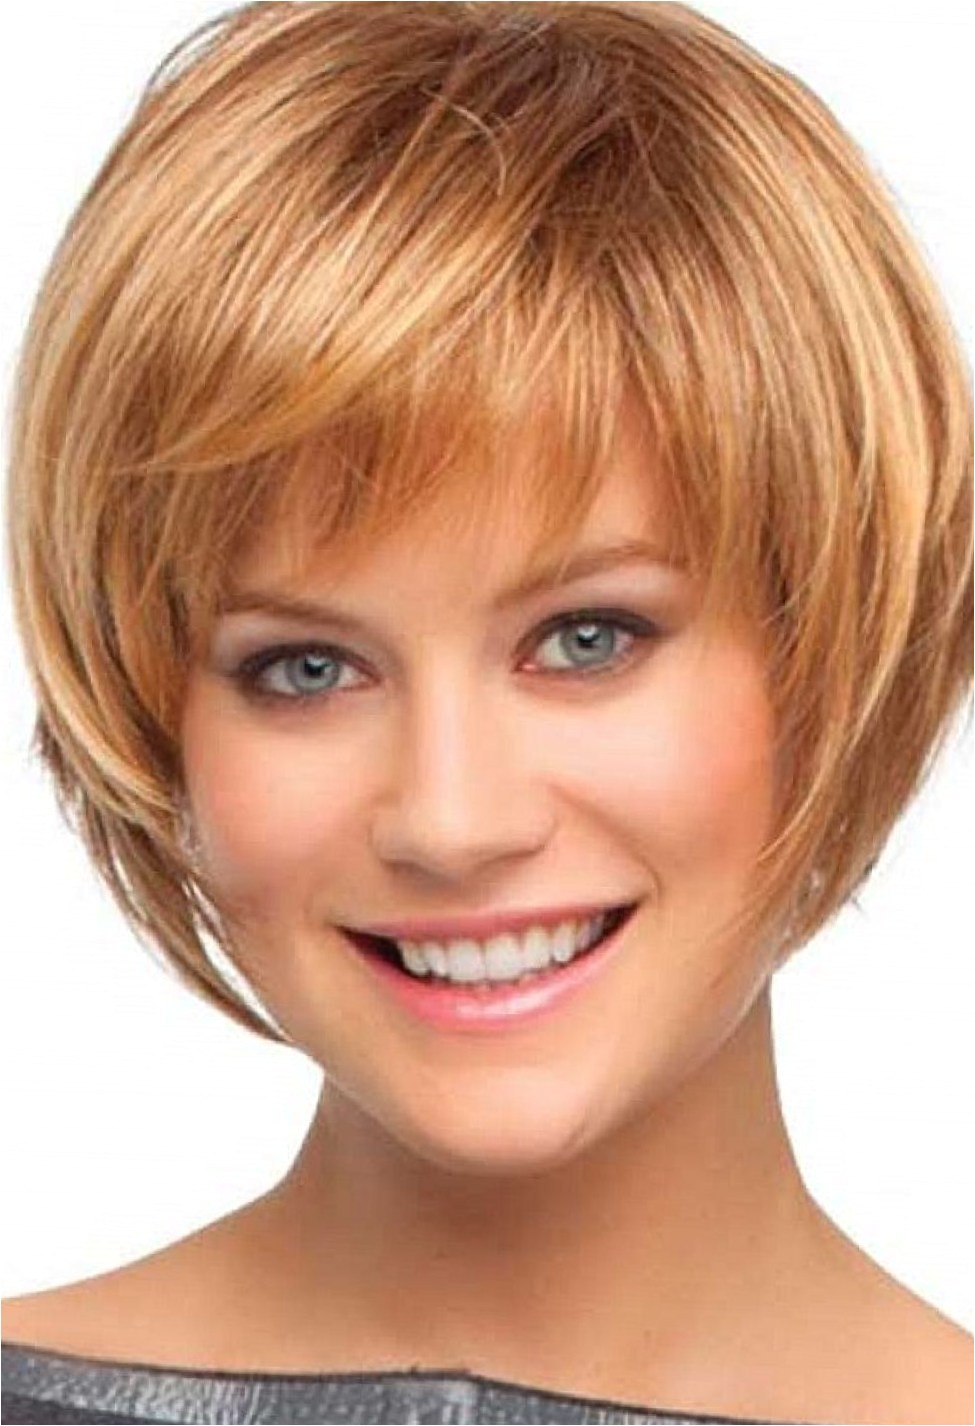 Bob Style Haircut Pictures Short Bob Hairstyles with Bangs 4 Perfect Ideas for You